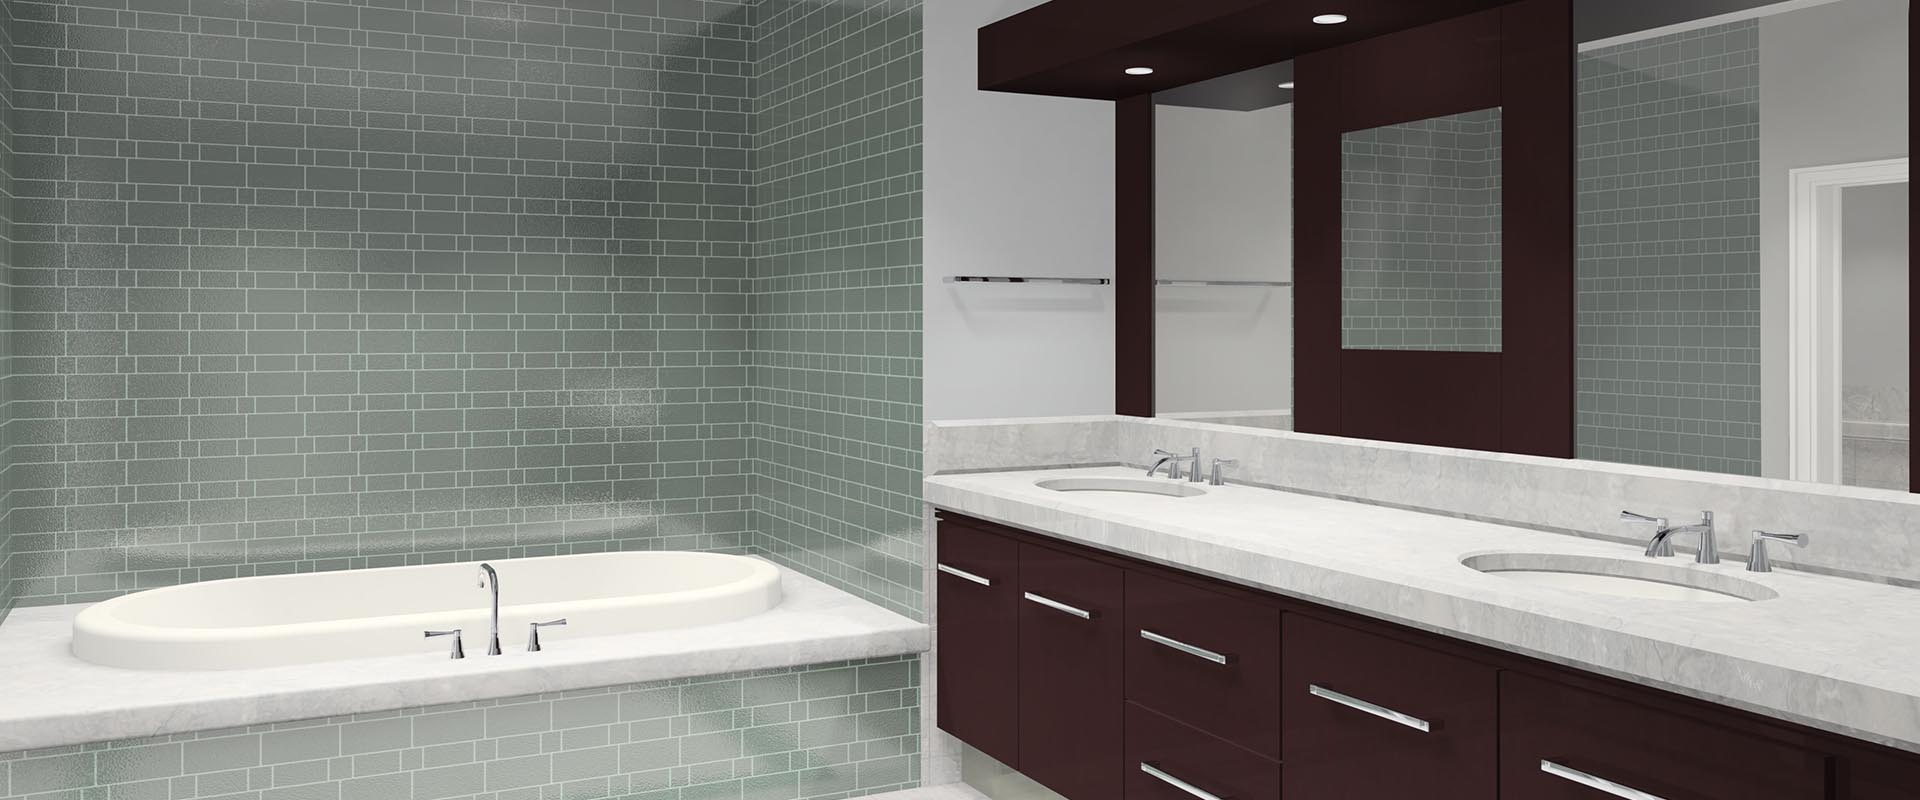 Decoration ideas bathroom designs canberra for Small bathroom renovations canberra